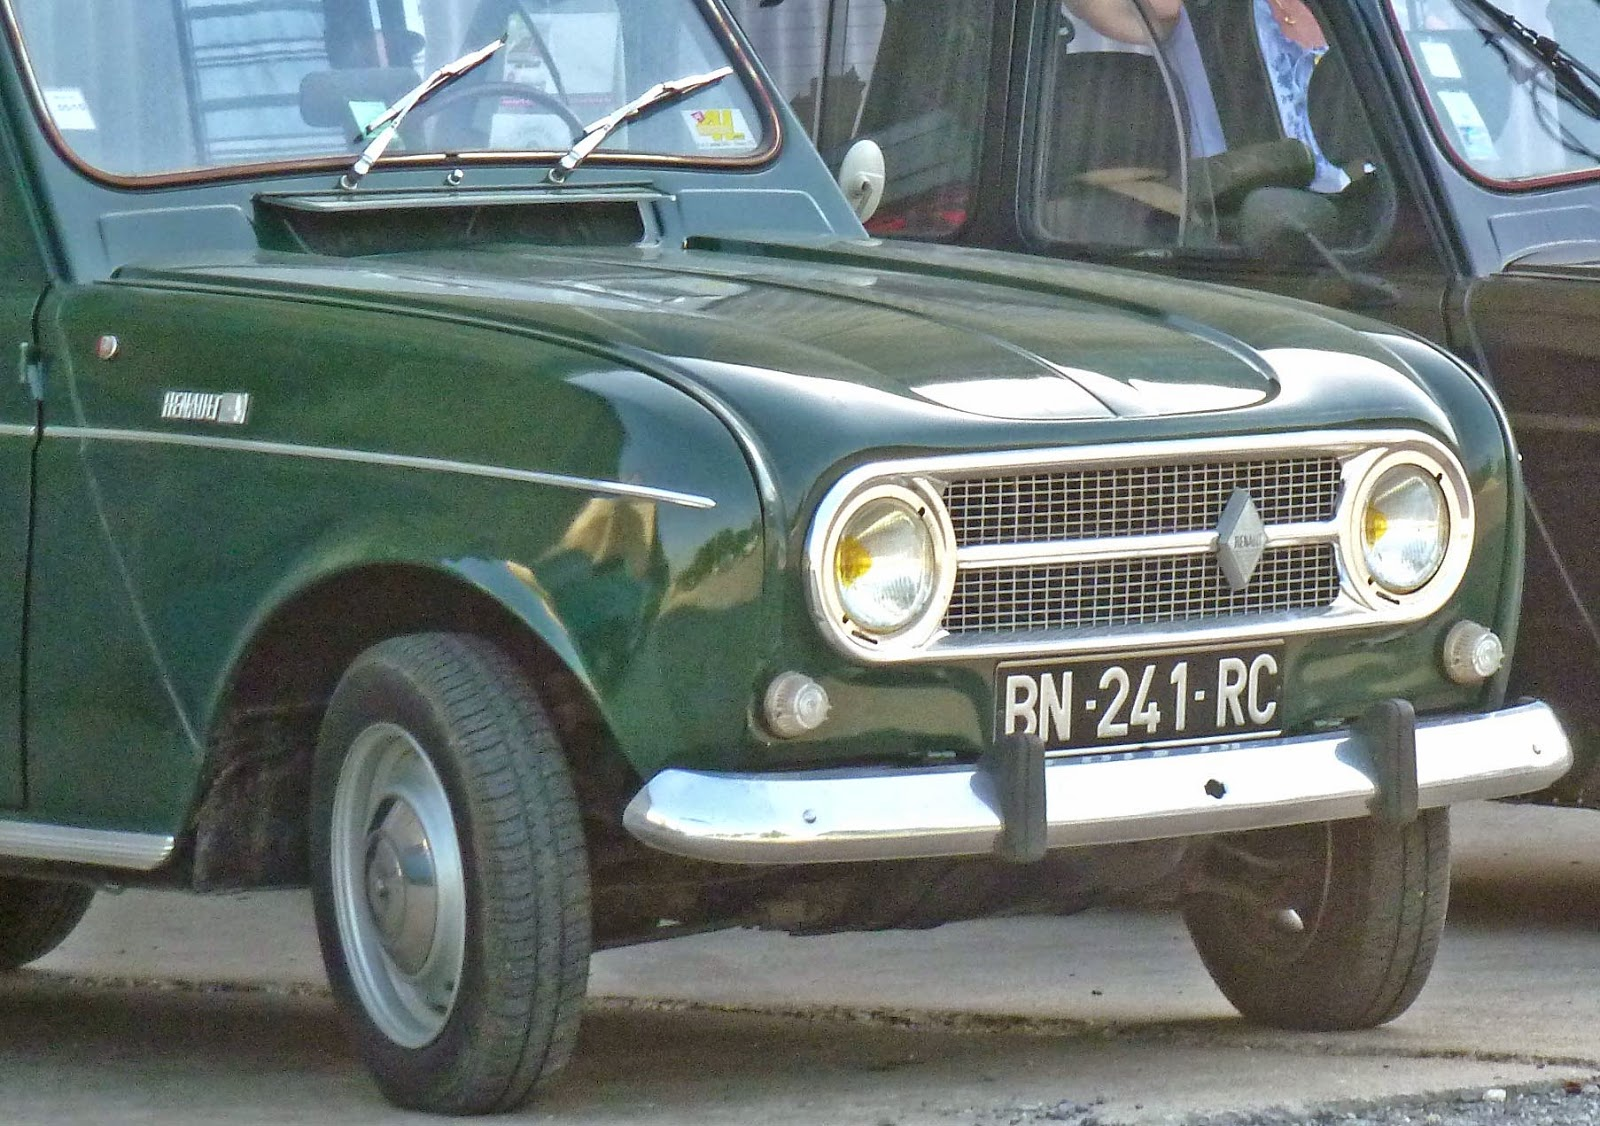 medium resolution of i still sometimes think i d like to own an old renault 4 but i feel like i d need to know how or have the inclination to learn how to work on old